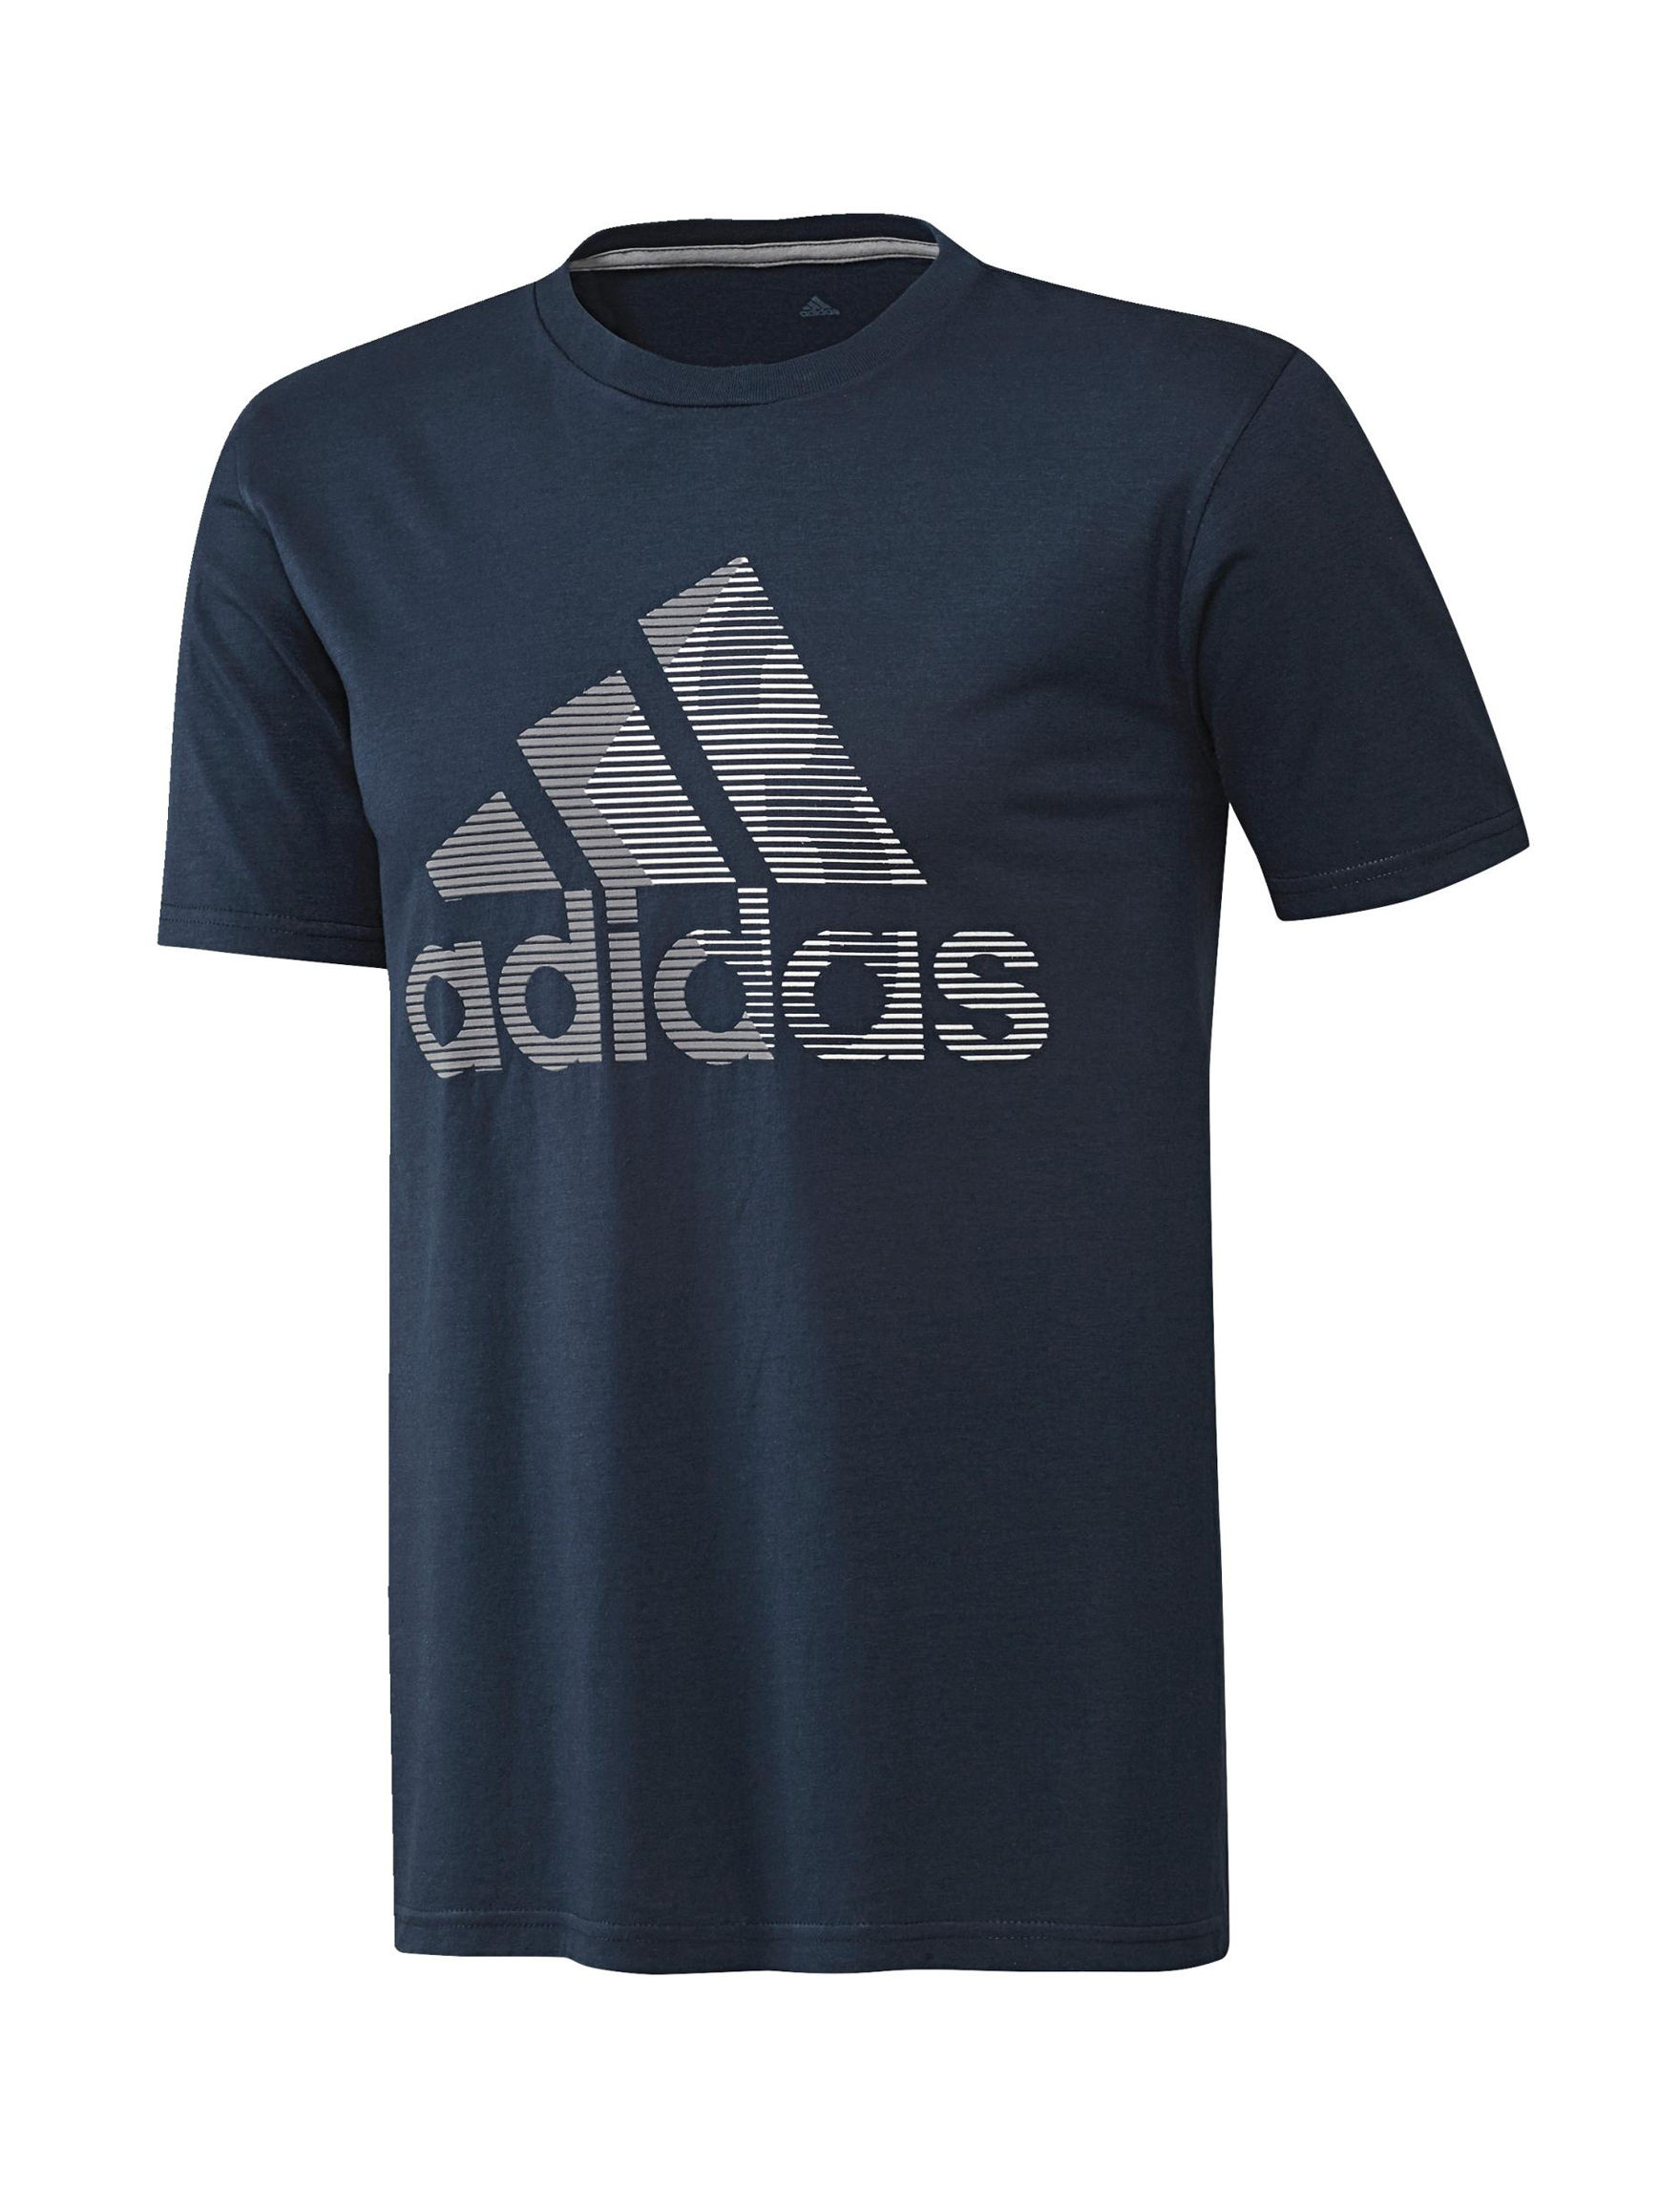 Adidas Navy Tees & Tanks